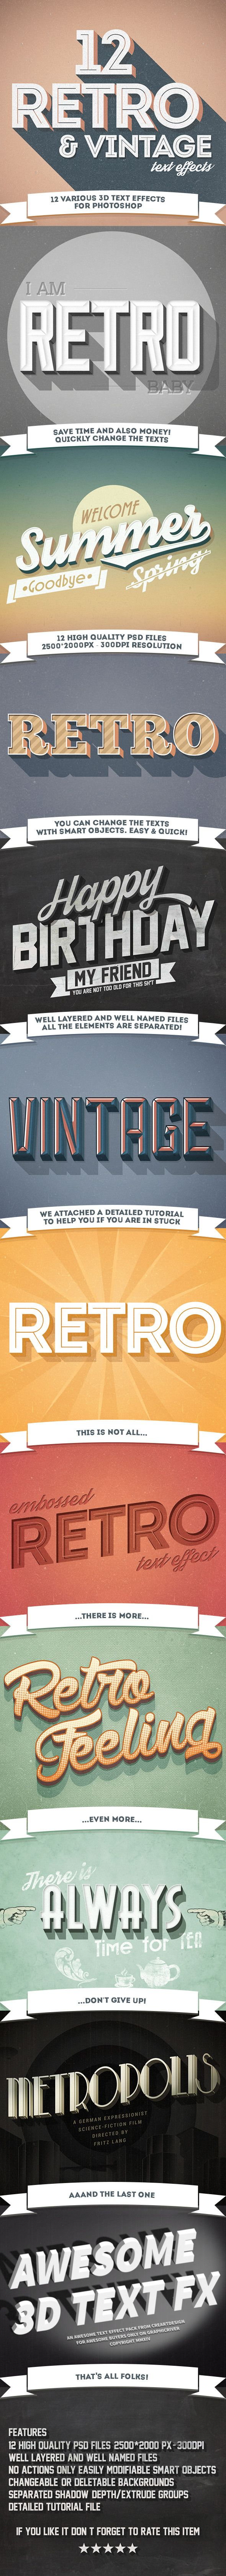 12 Various 3D Retro & Vintage Text Effects Pack - Photoshop Add-ons